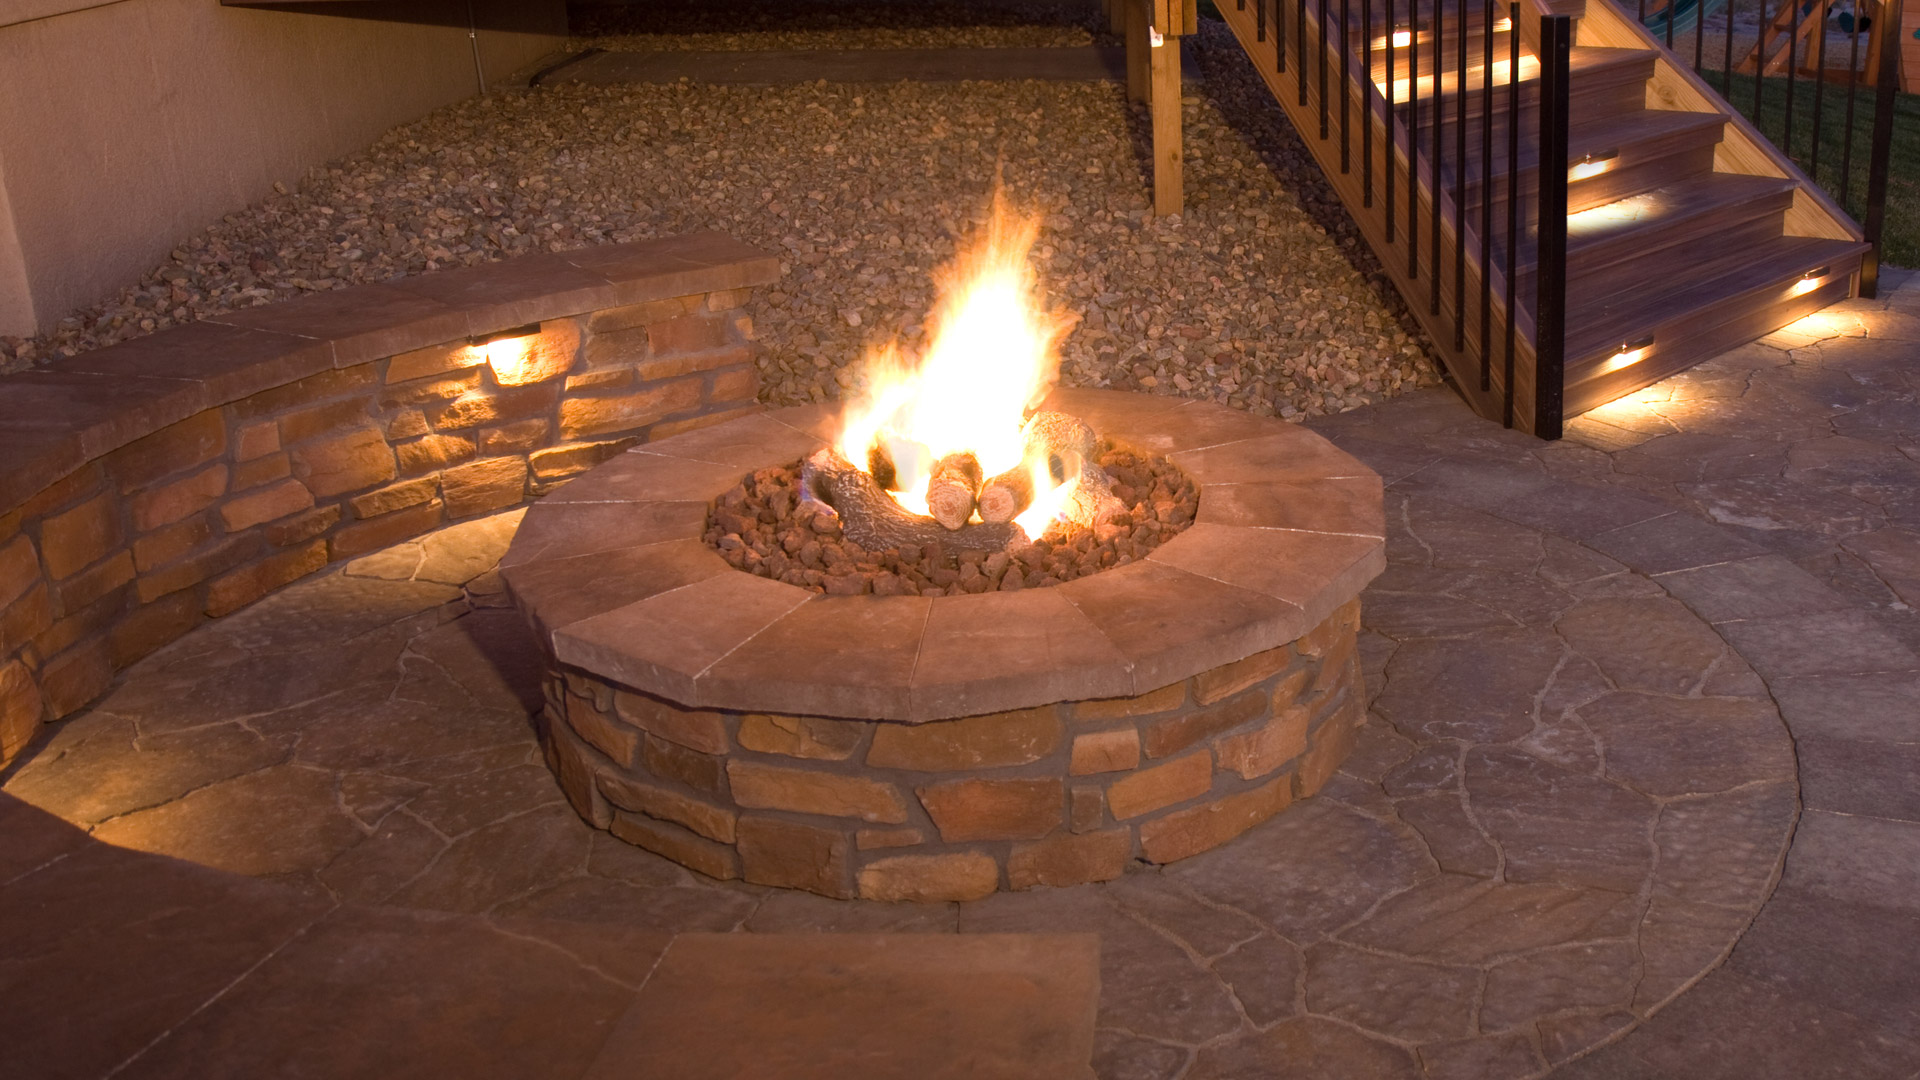 Recently constructed gas fire pit at a residential property in Loveland, CO.